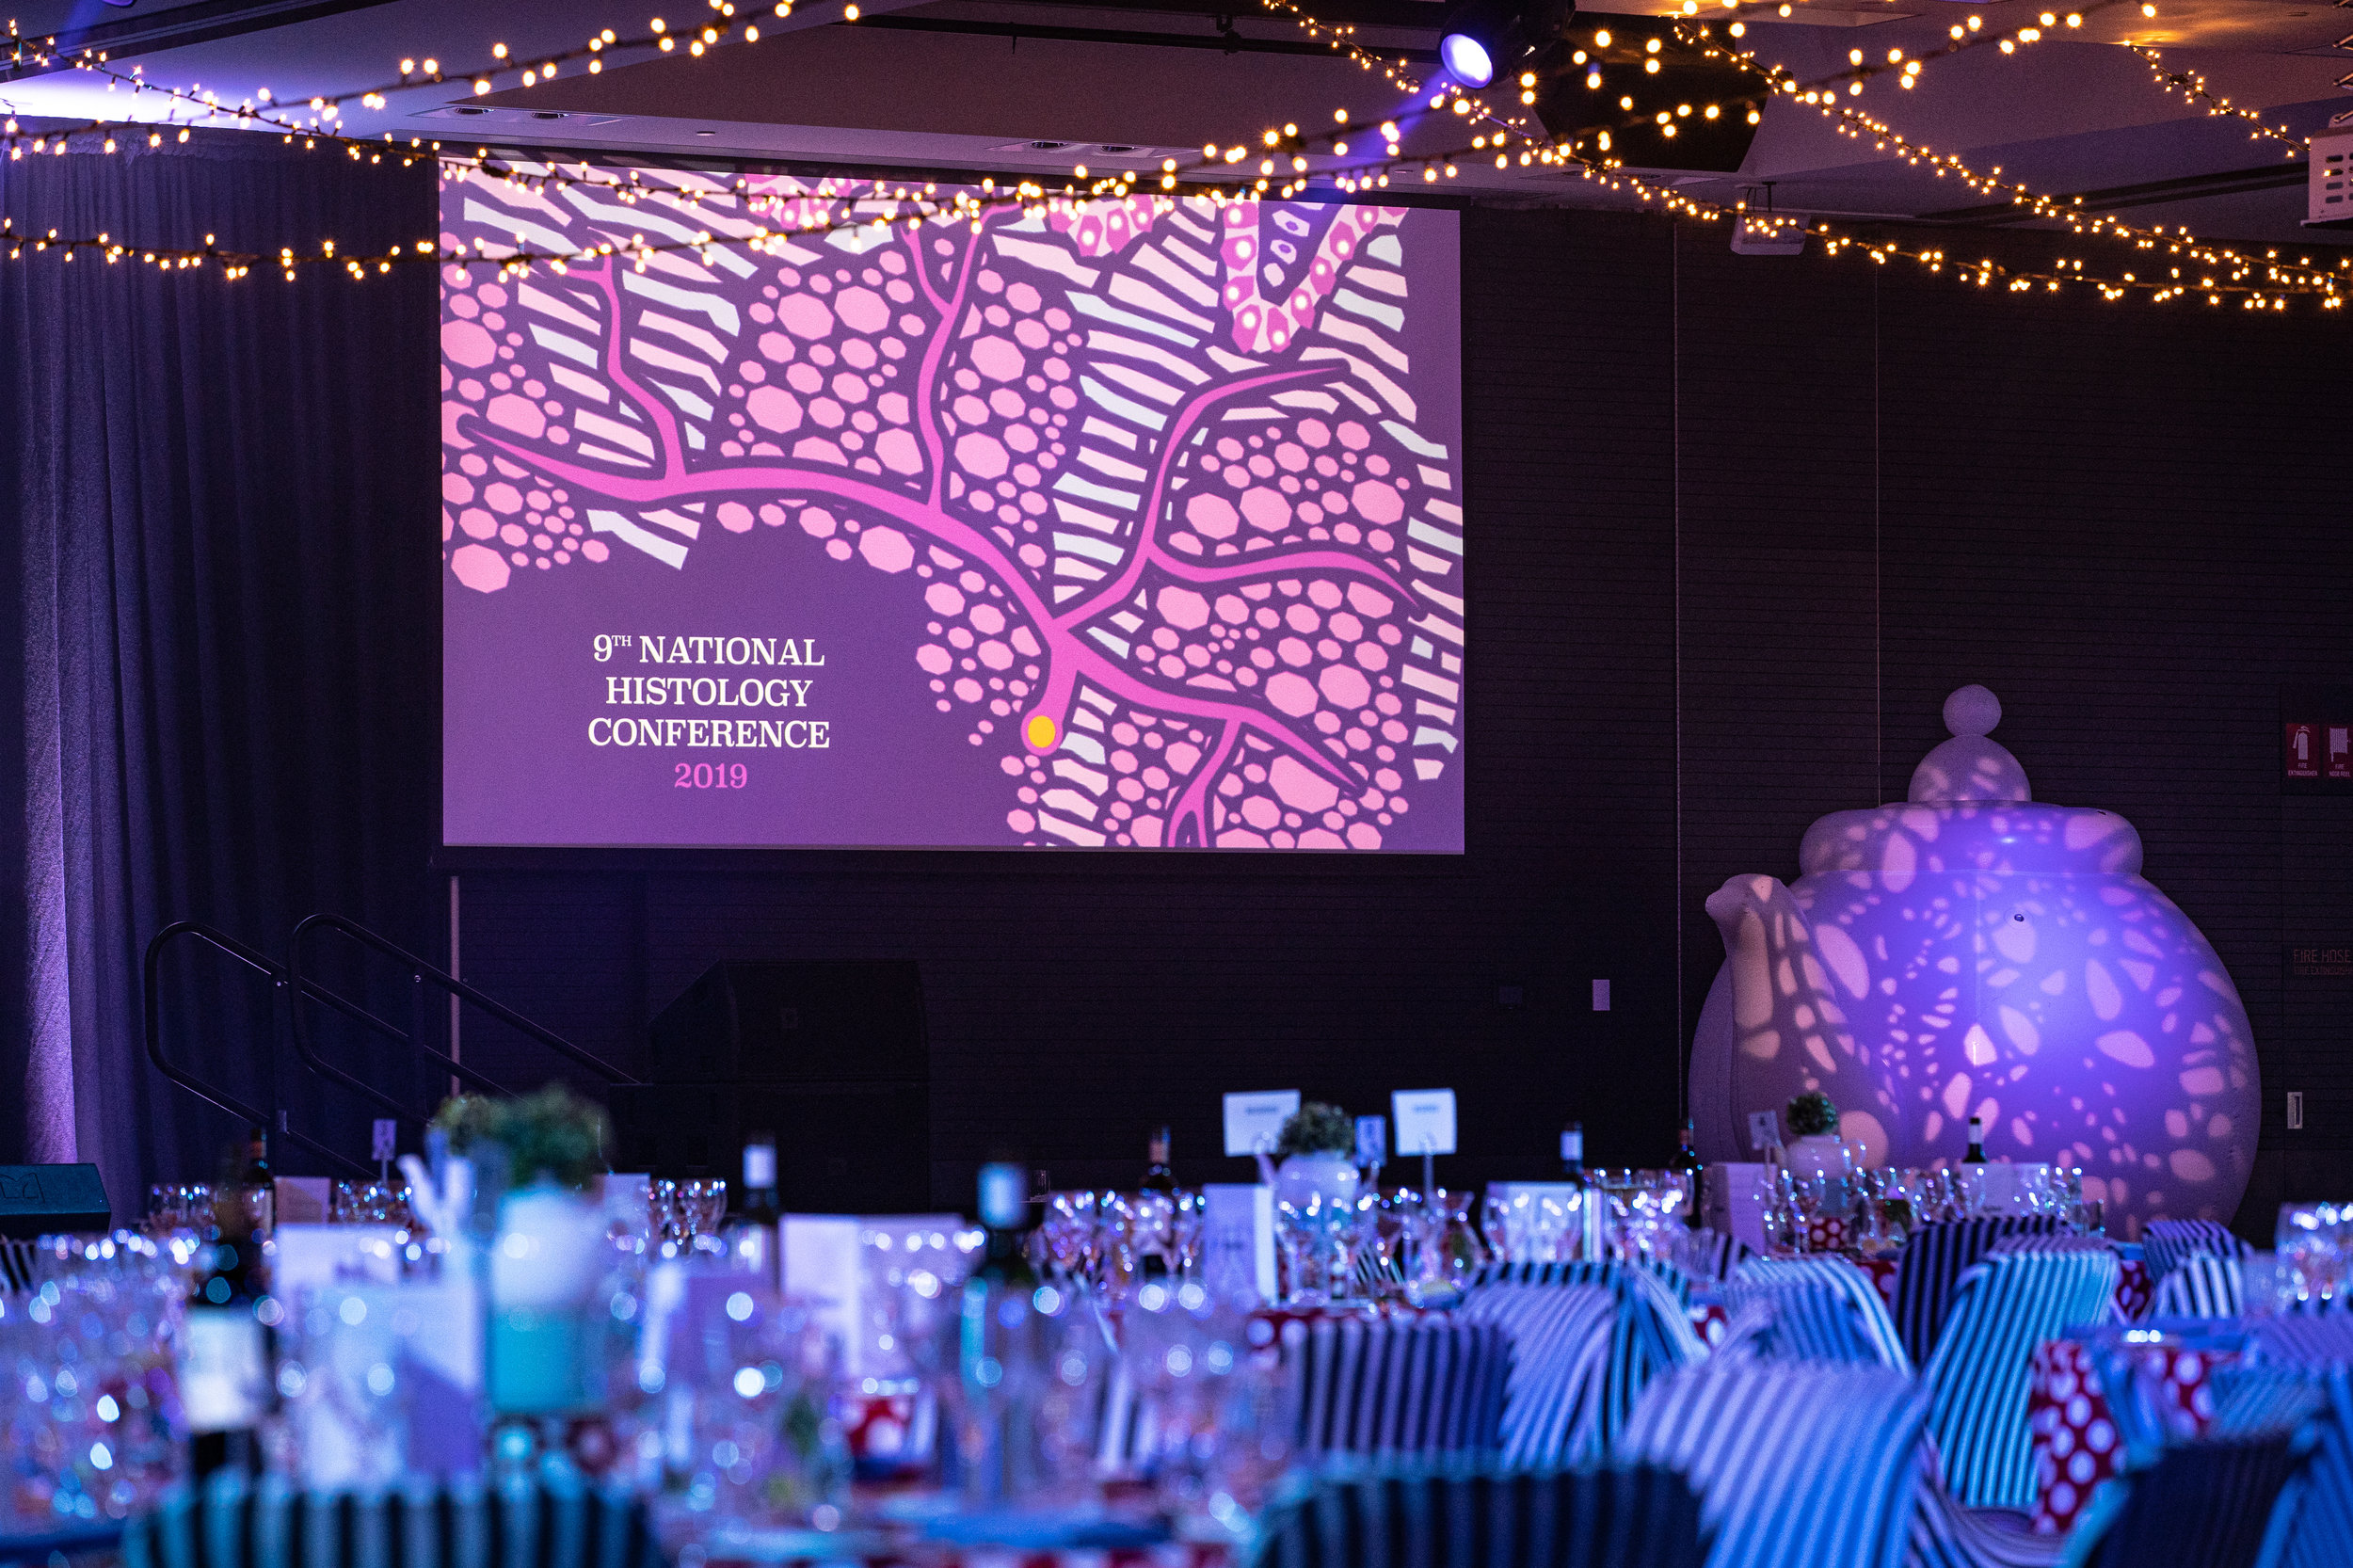 National Histology Conference 2019 | Gala Dinner - Through the Looking Glass | sponsored by Agilent  photo credit: asbCreative Photography